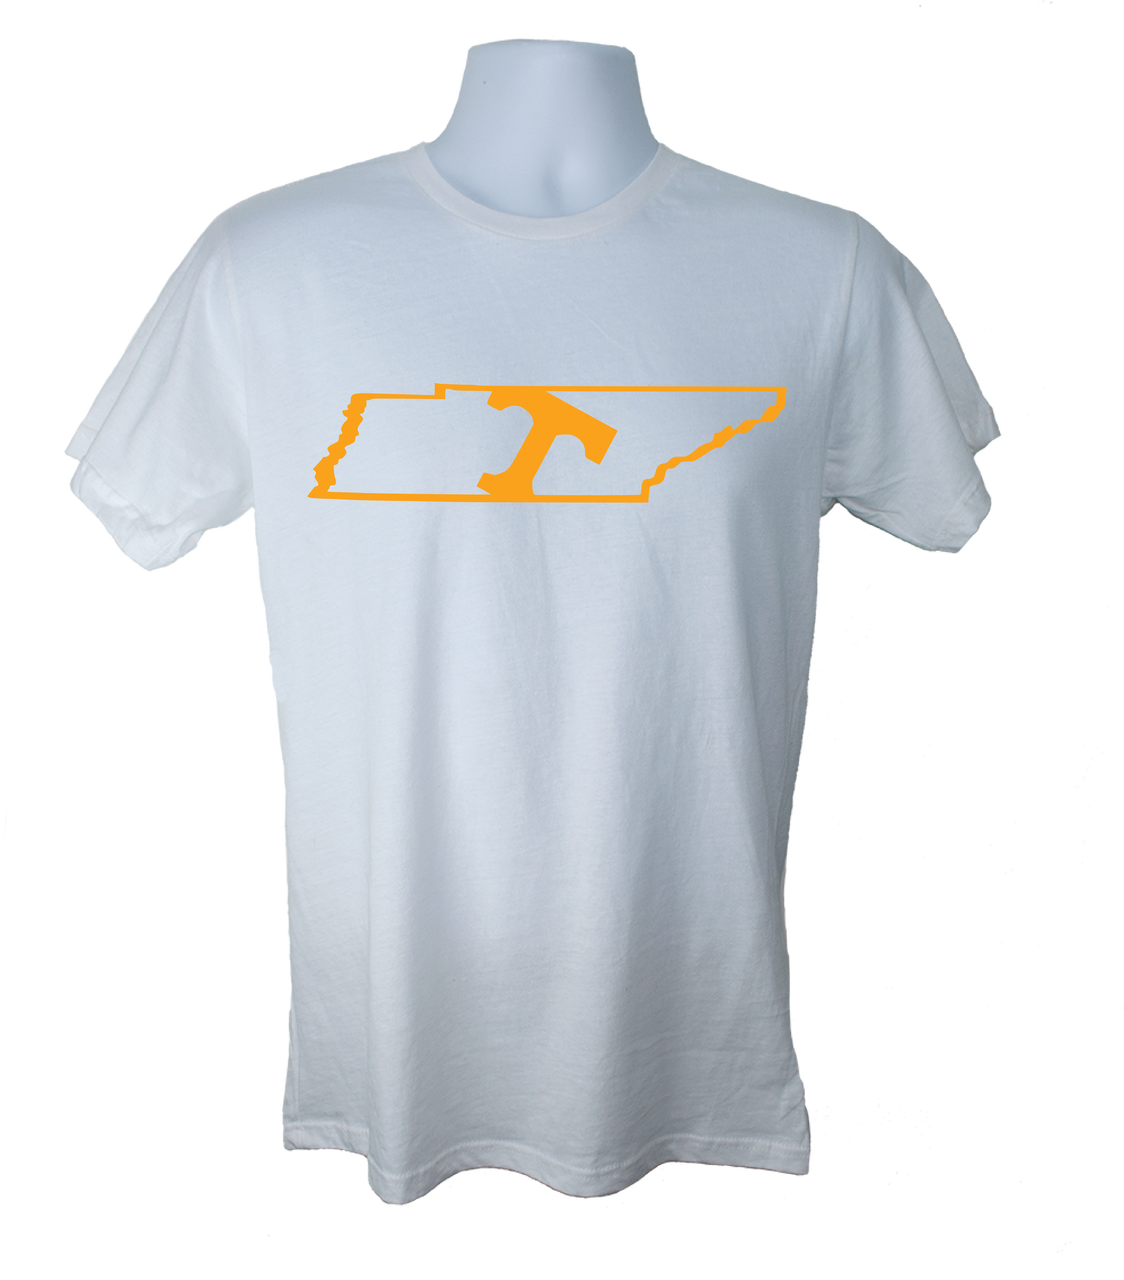 Tennessee Vols Shirt With The Tilted Power T In State